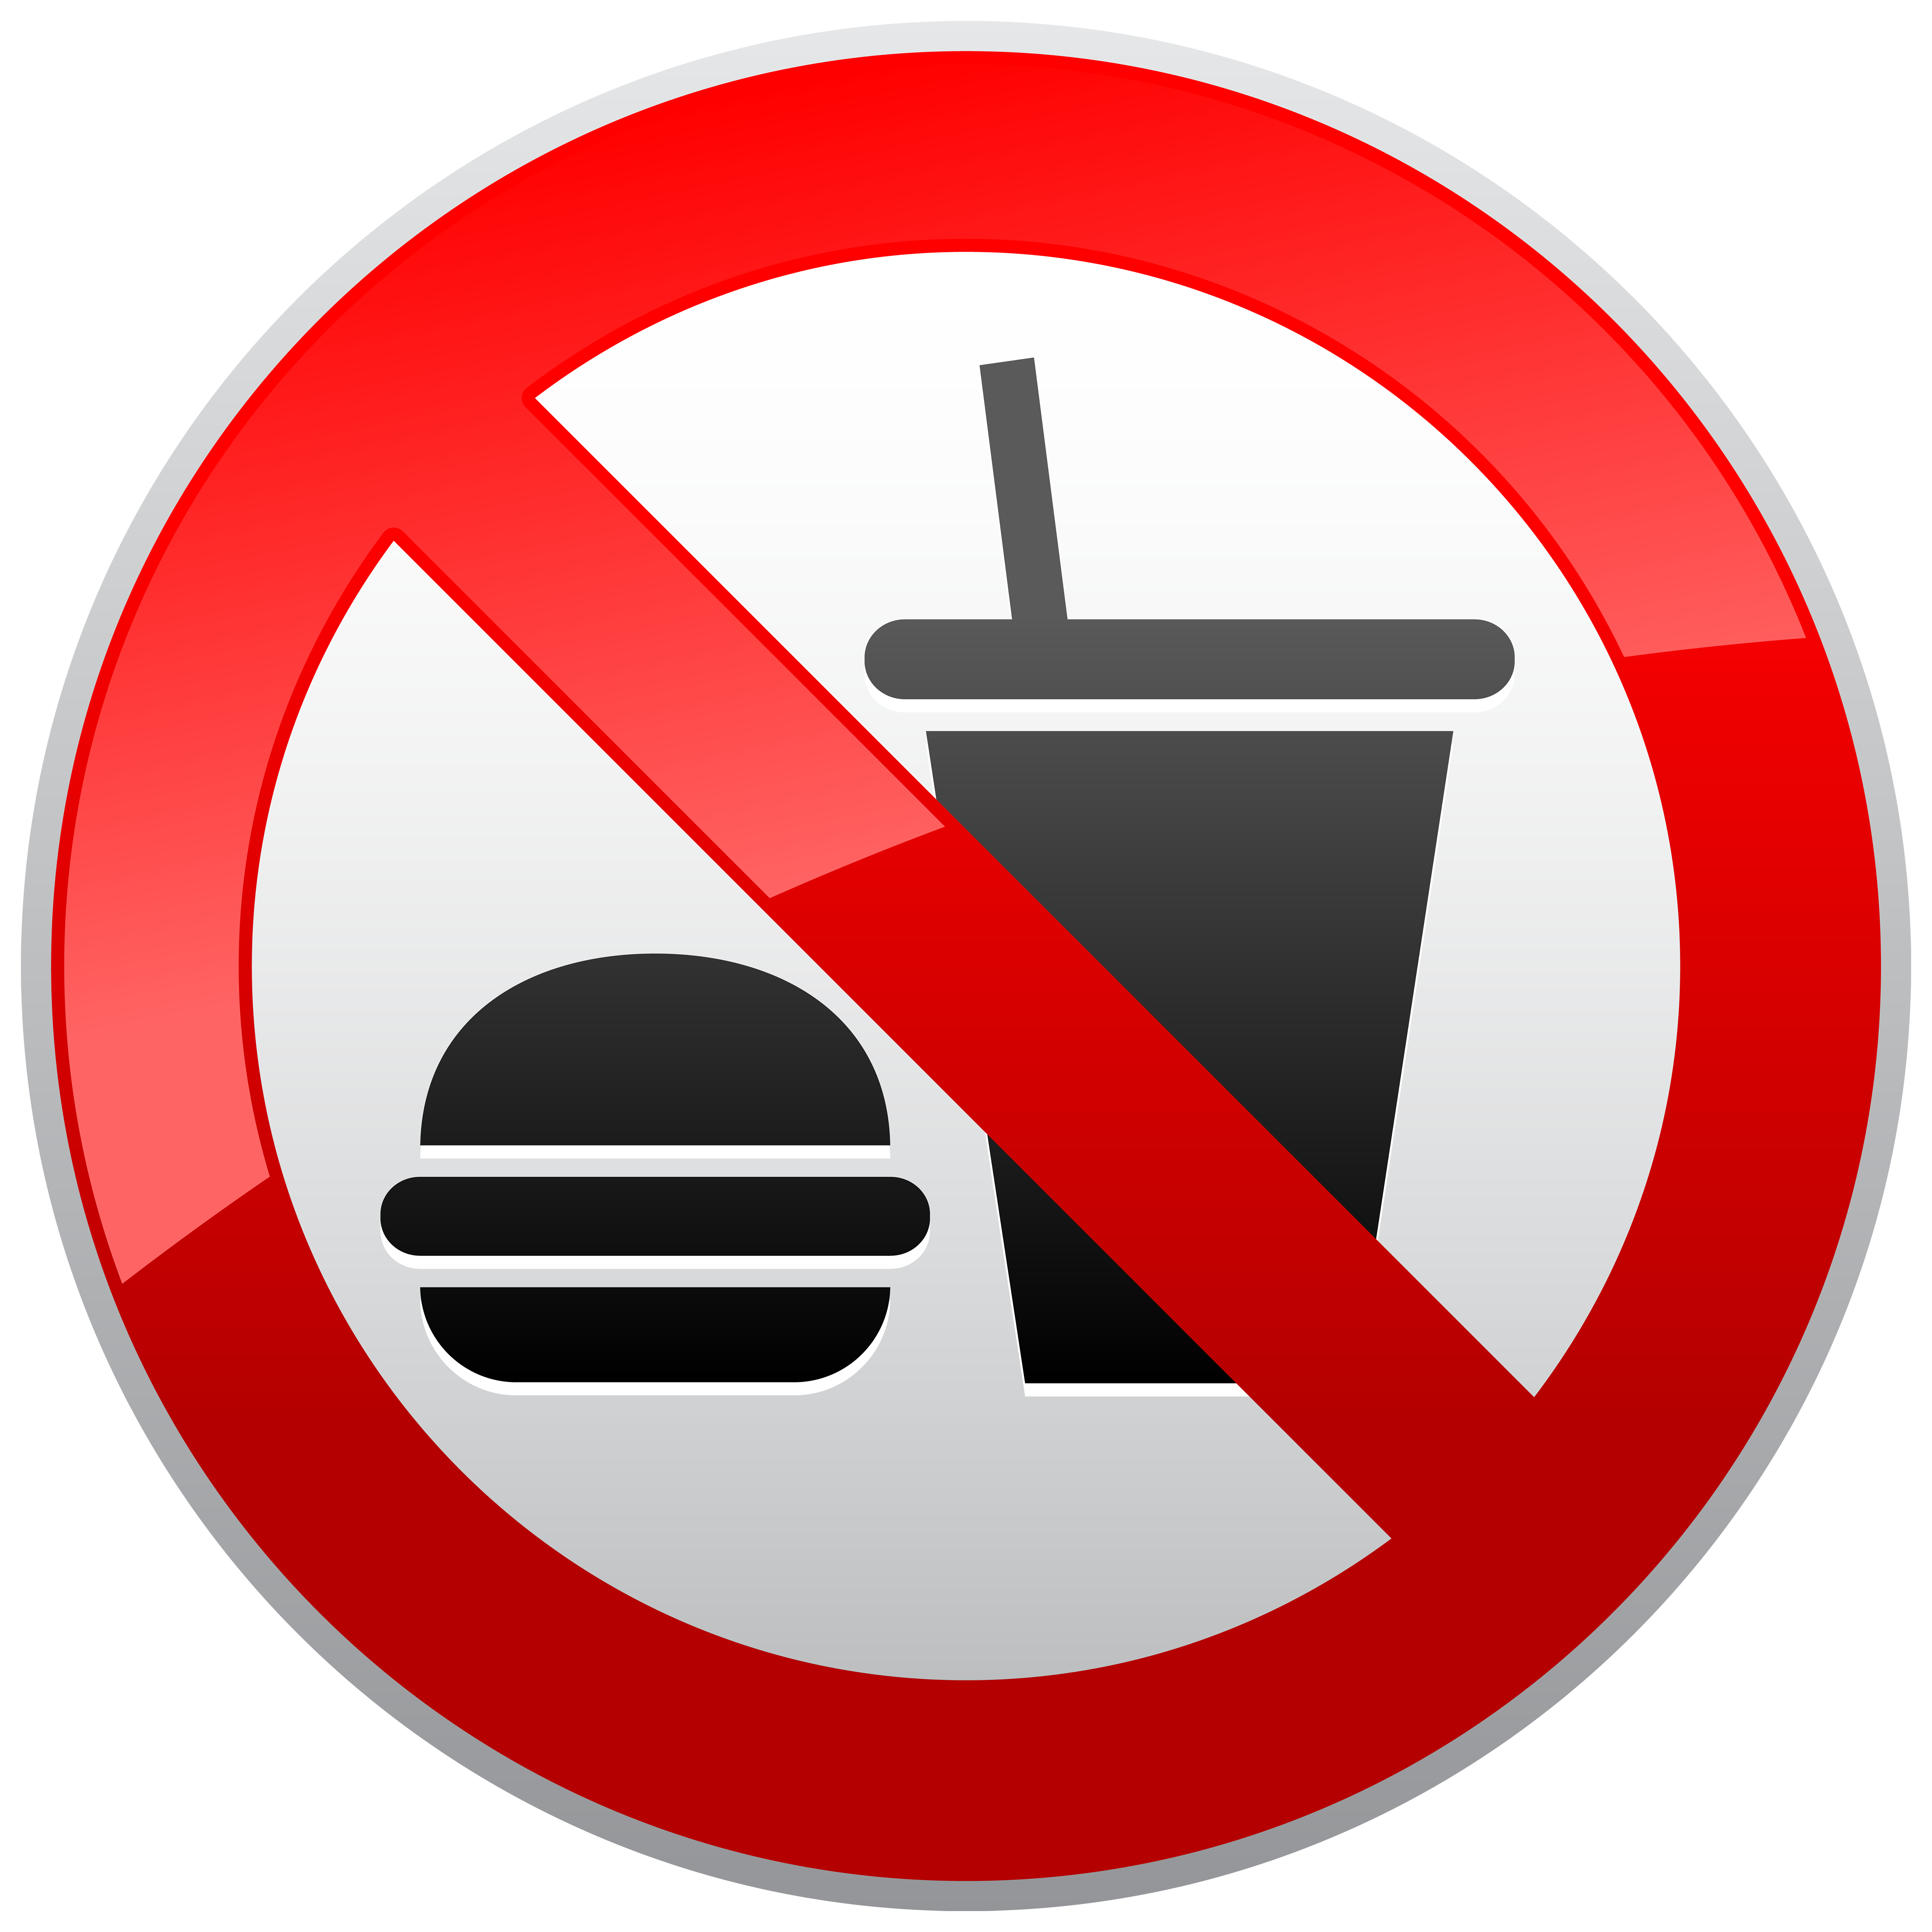 Mouth clipart eating. No or drinking prohibition